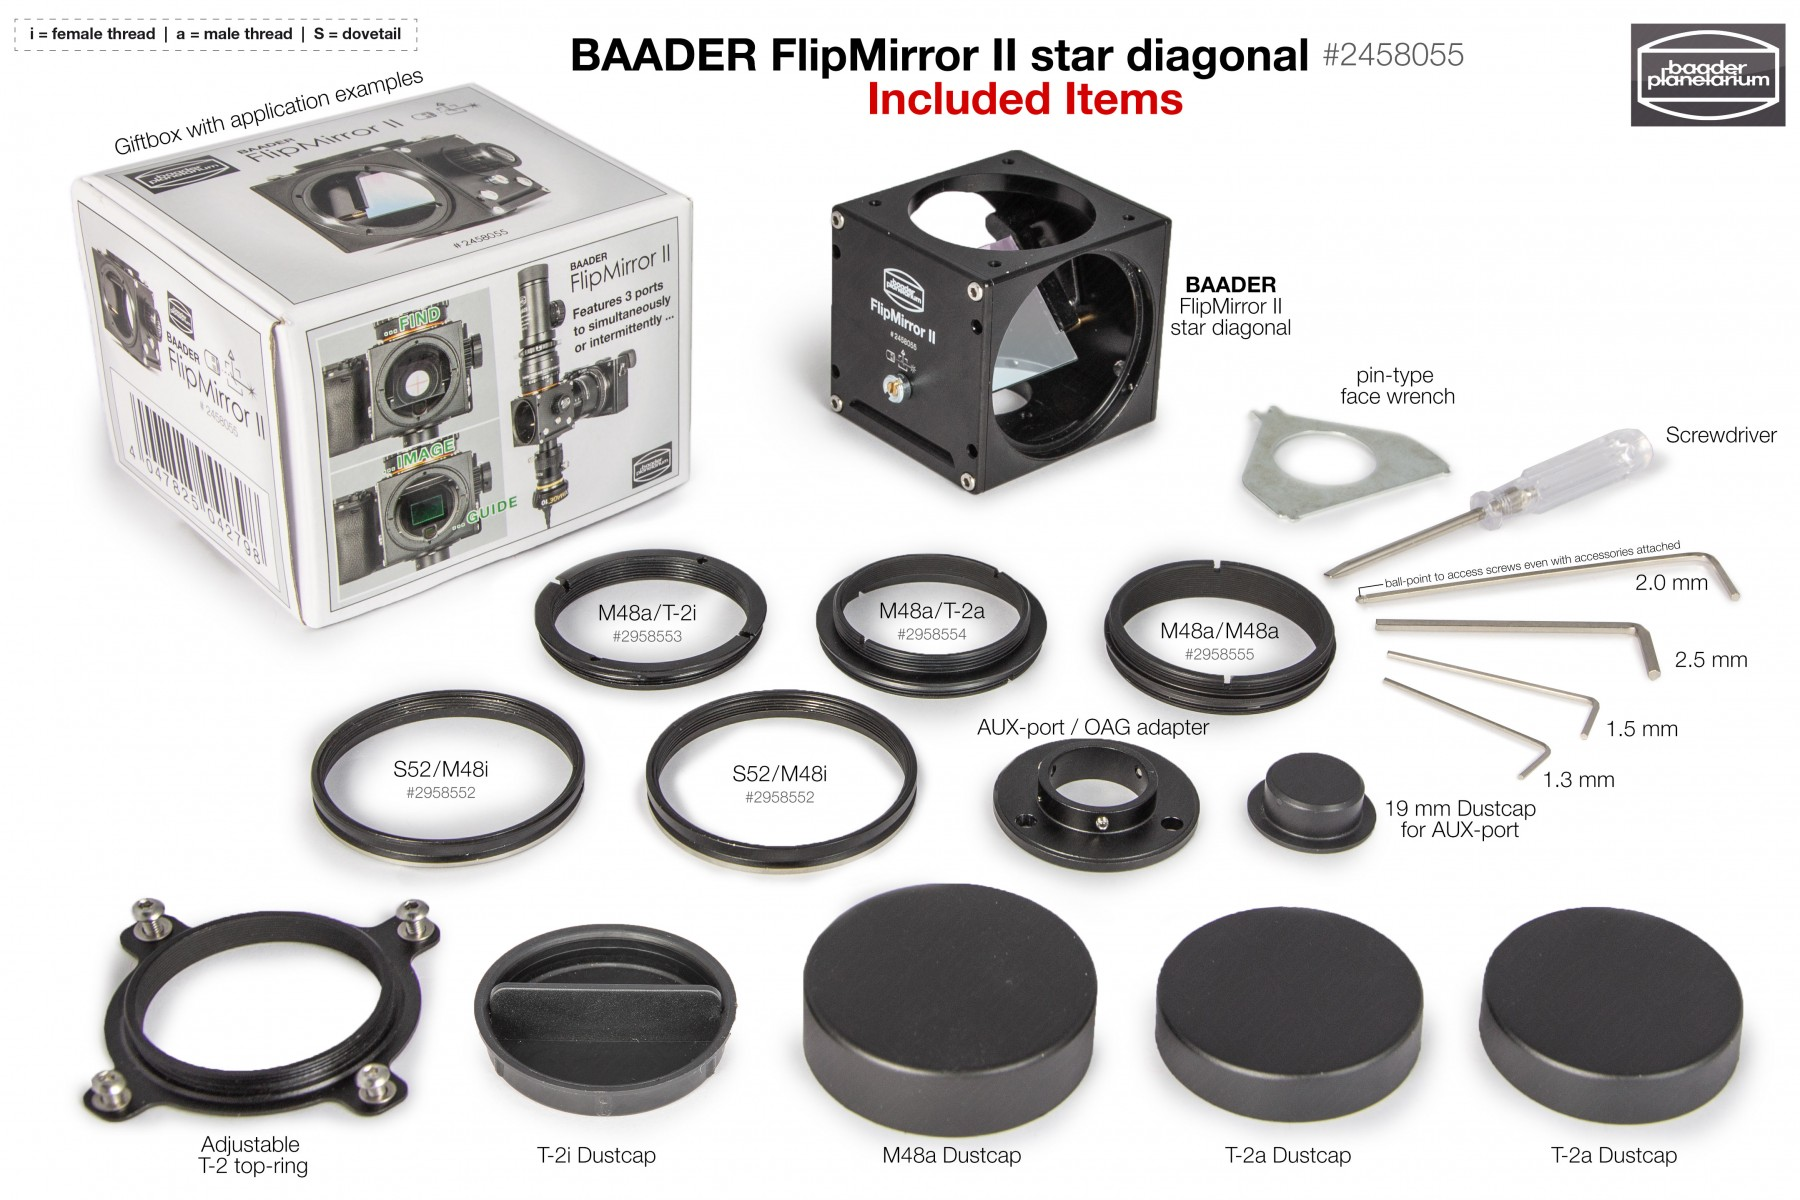 Baader FlipMirror II Star Diagonal - Included Items